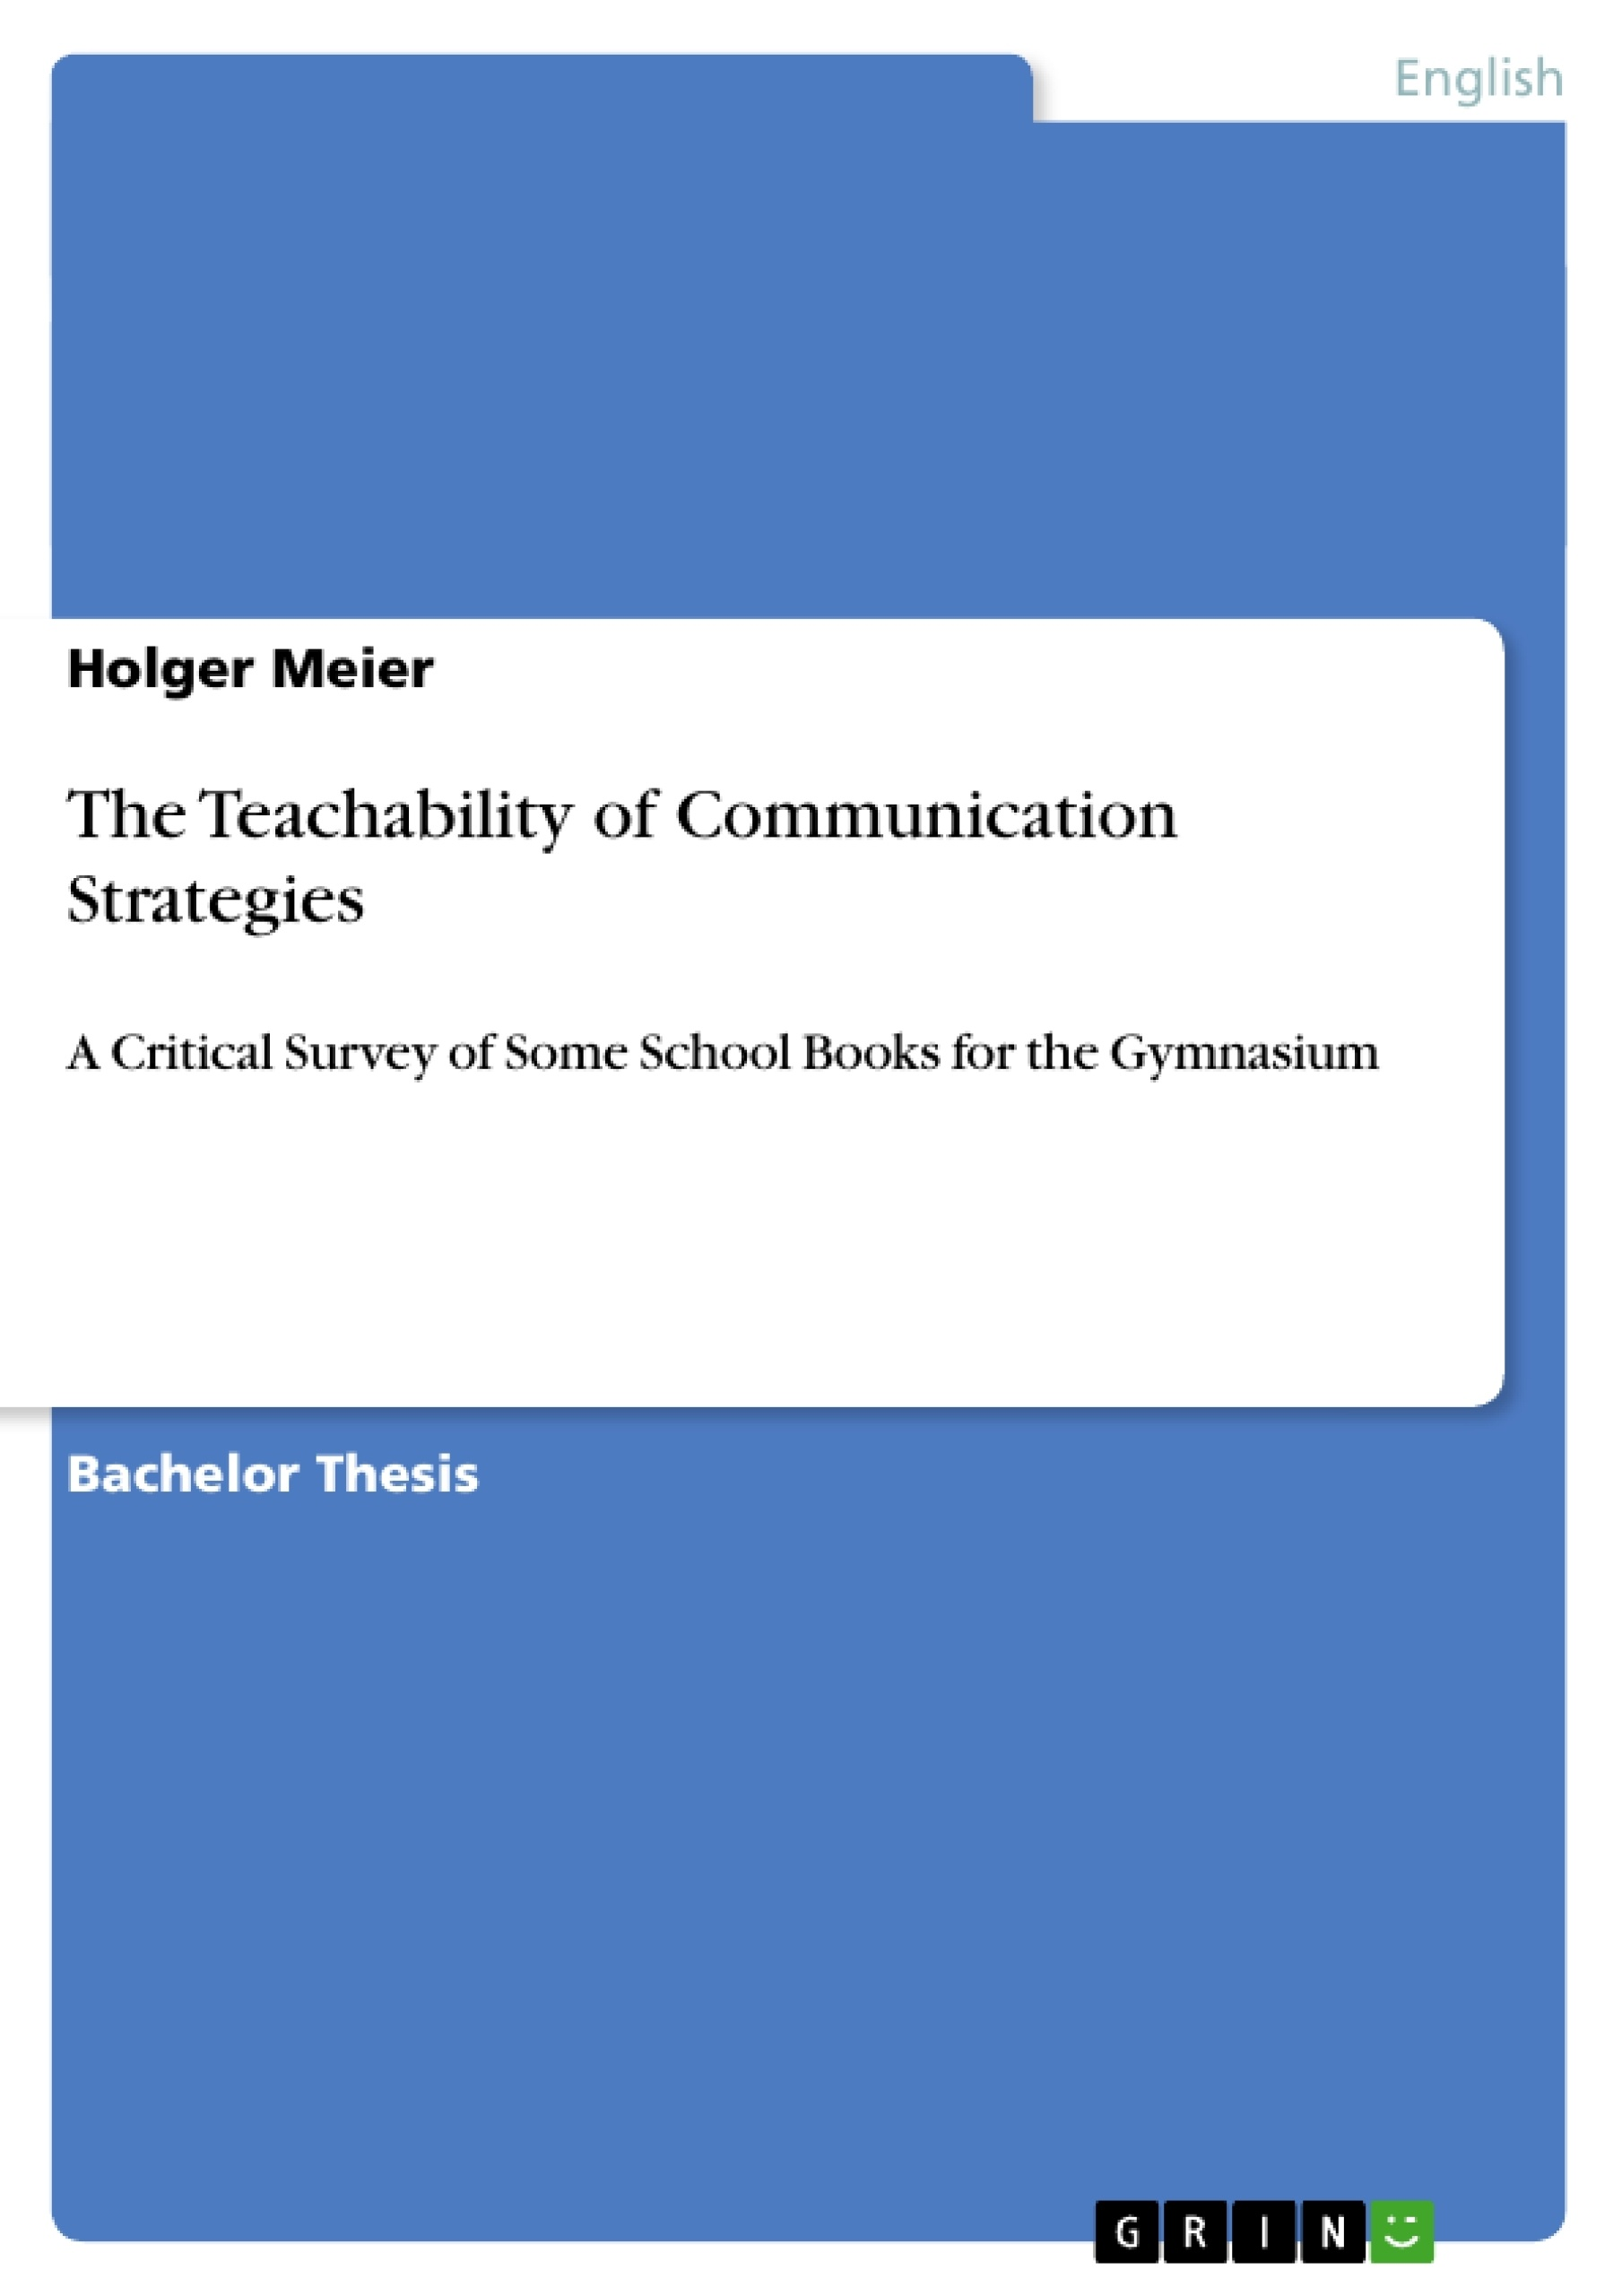 Title: The Teachability of Communication Strategies